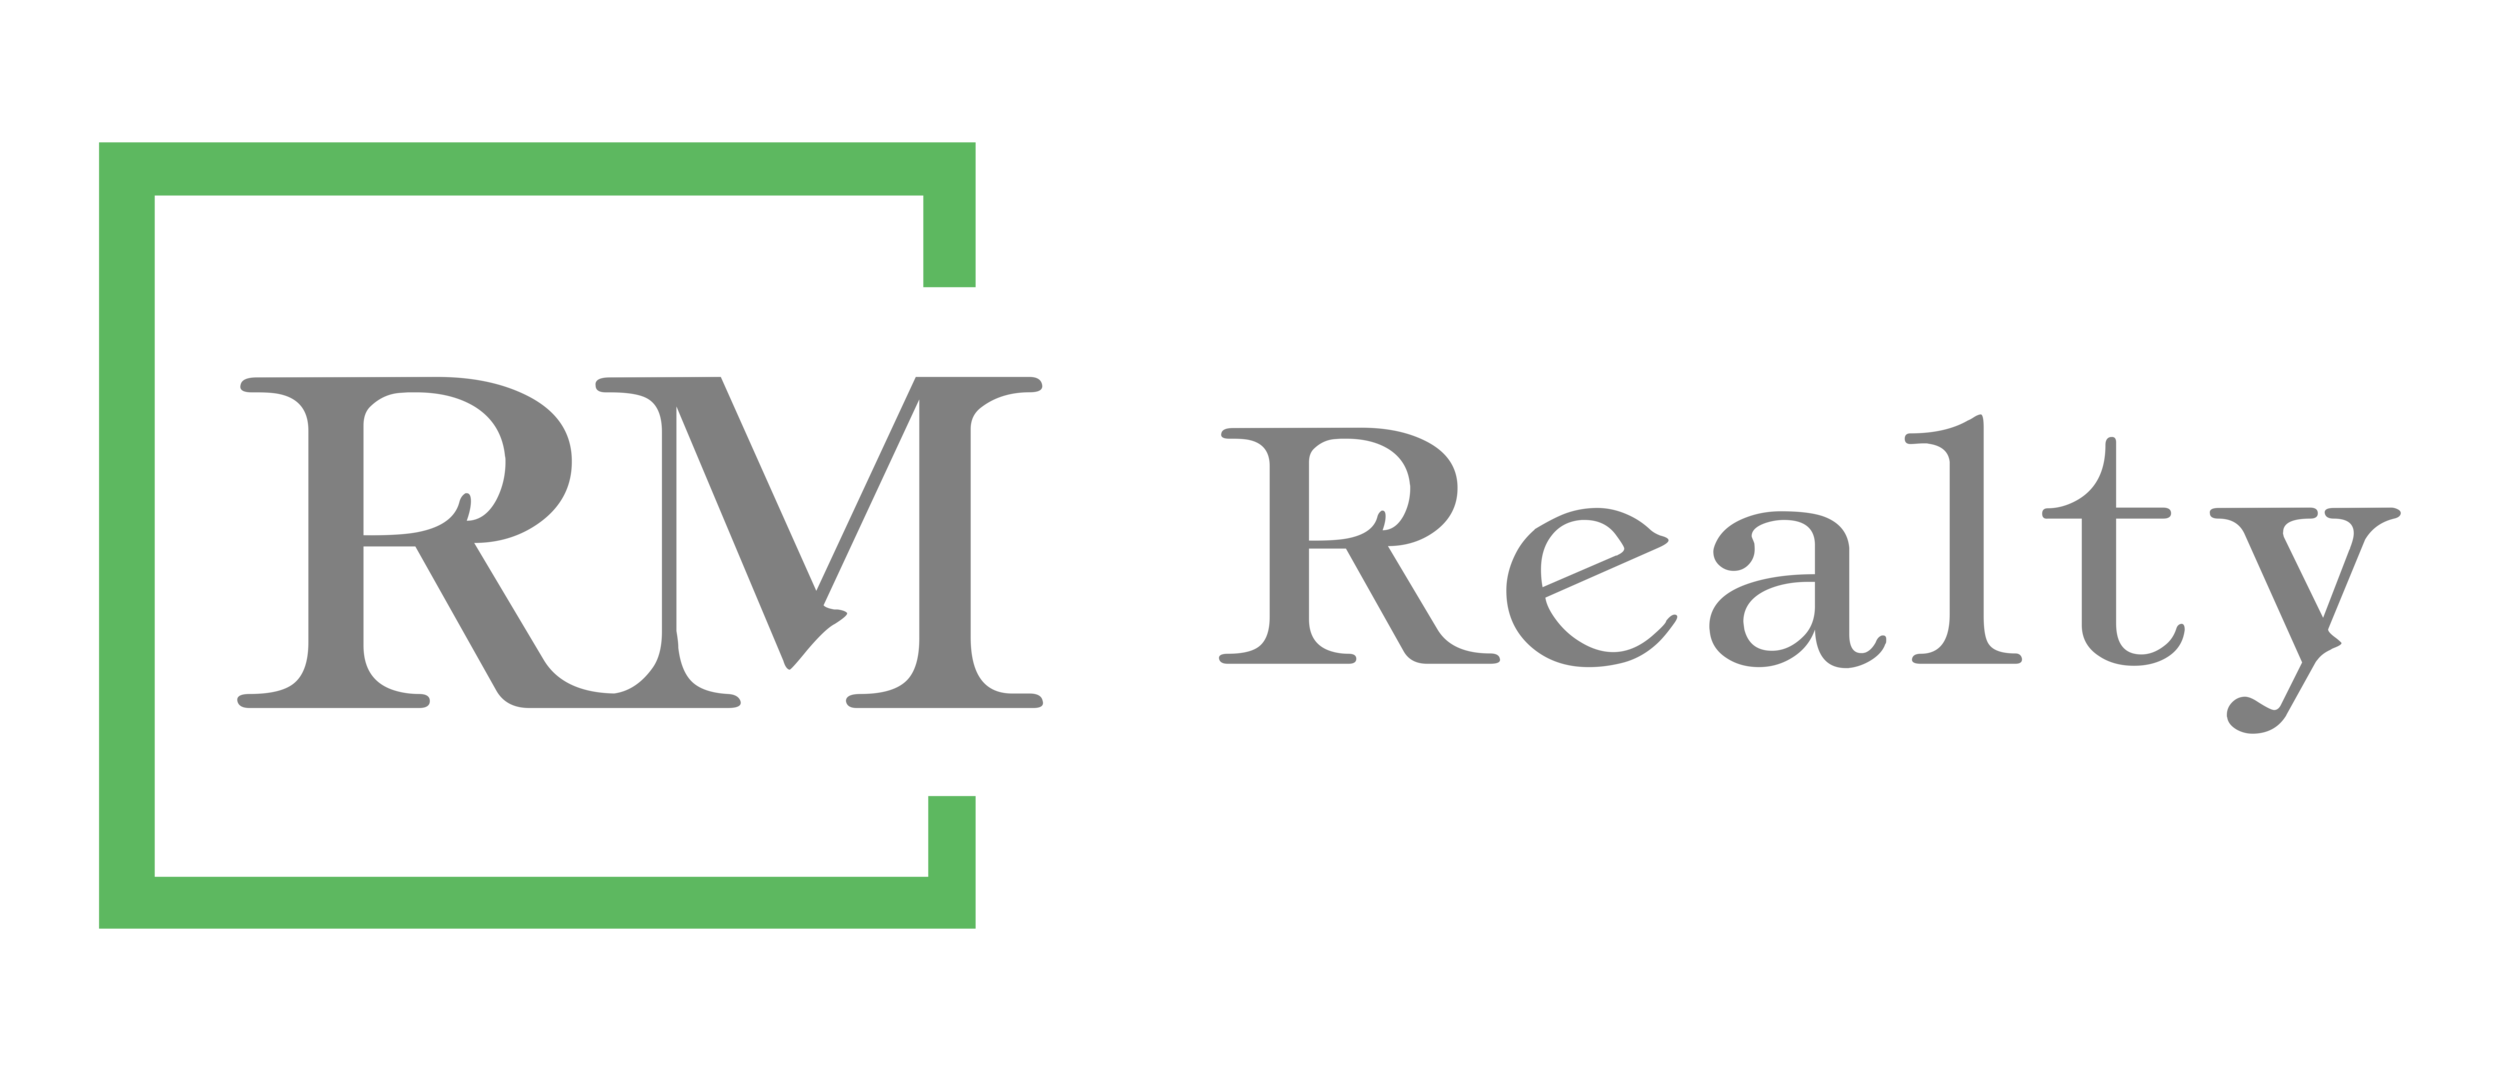 RM Realty